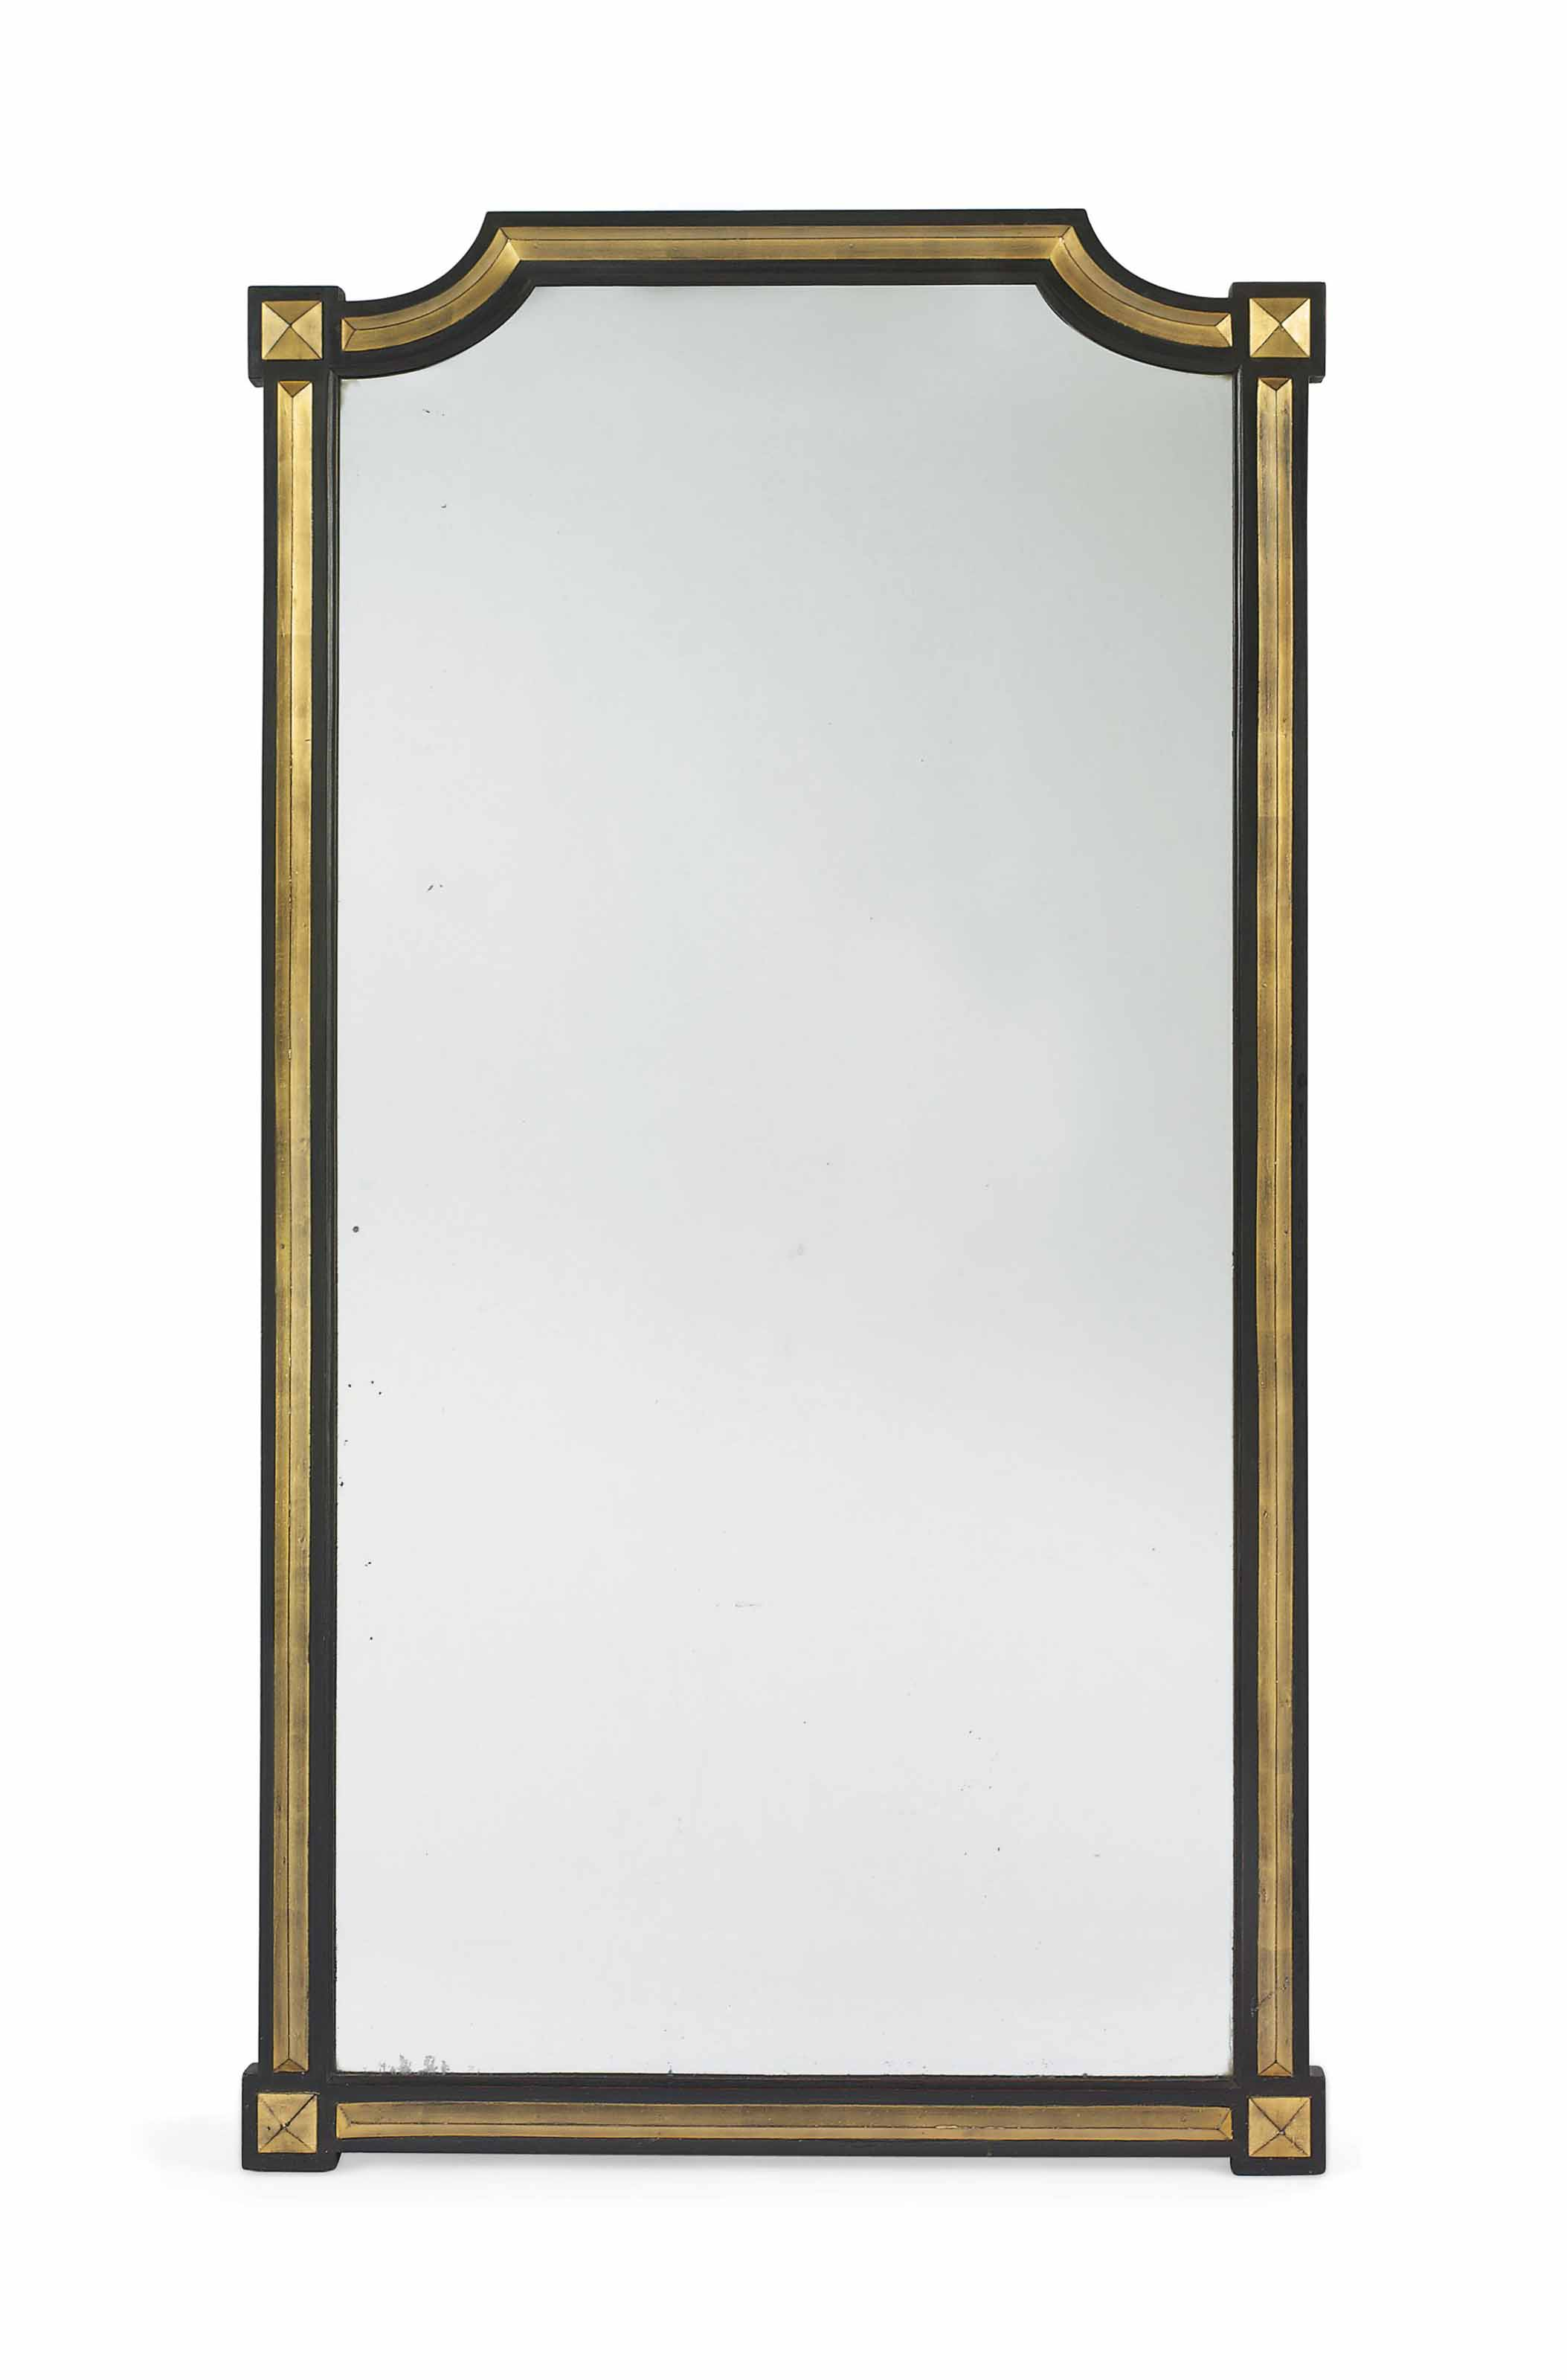 AN ENGLISH PARCEL-GILT AND EBONISED PIER MIRROR